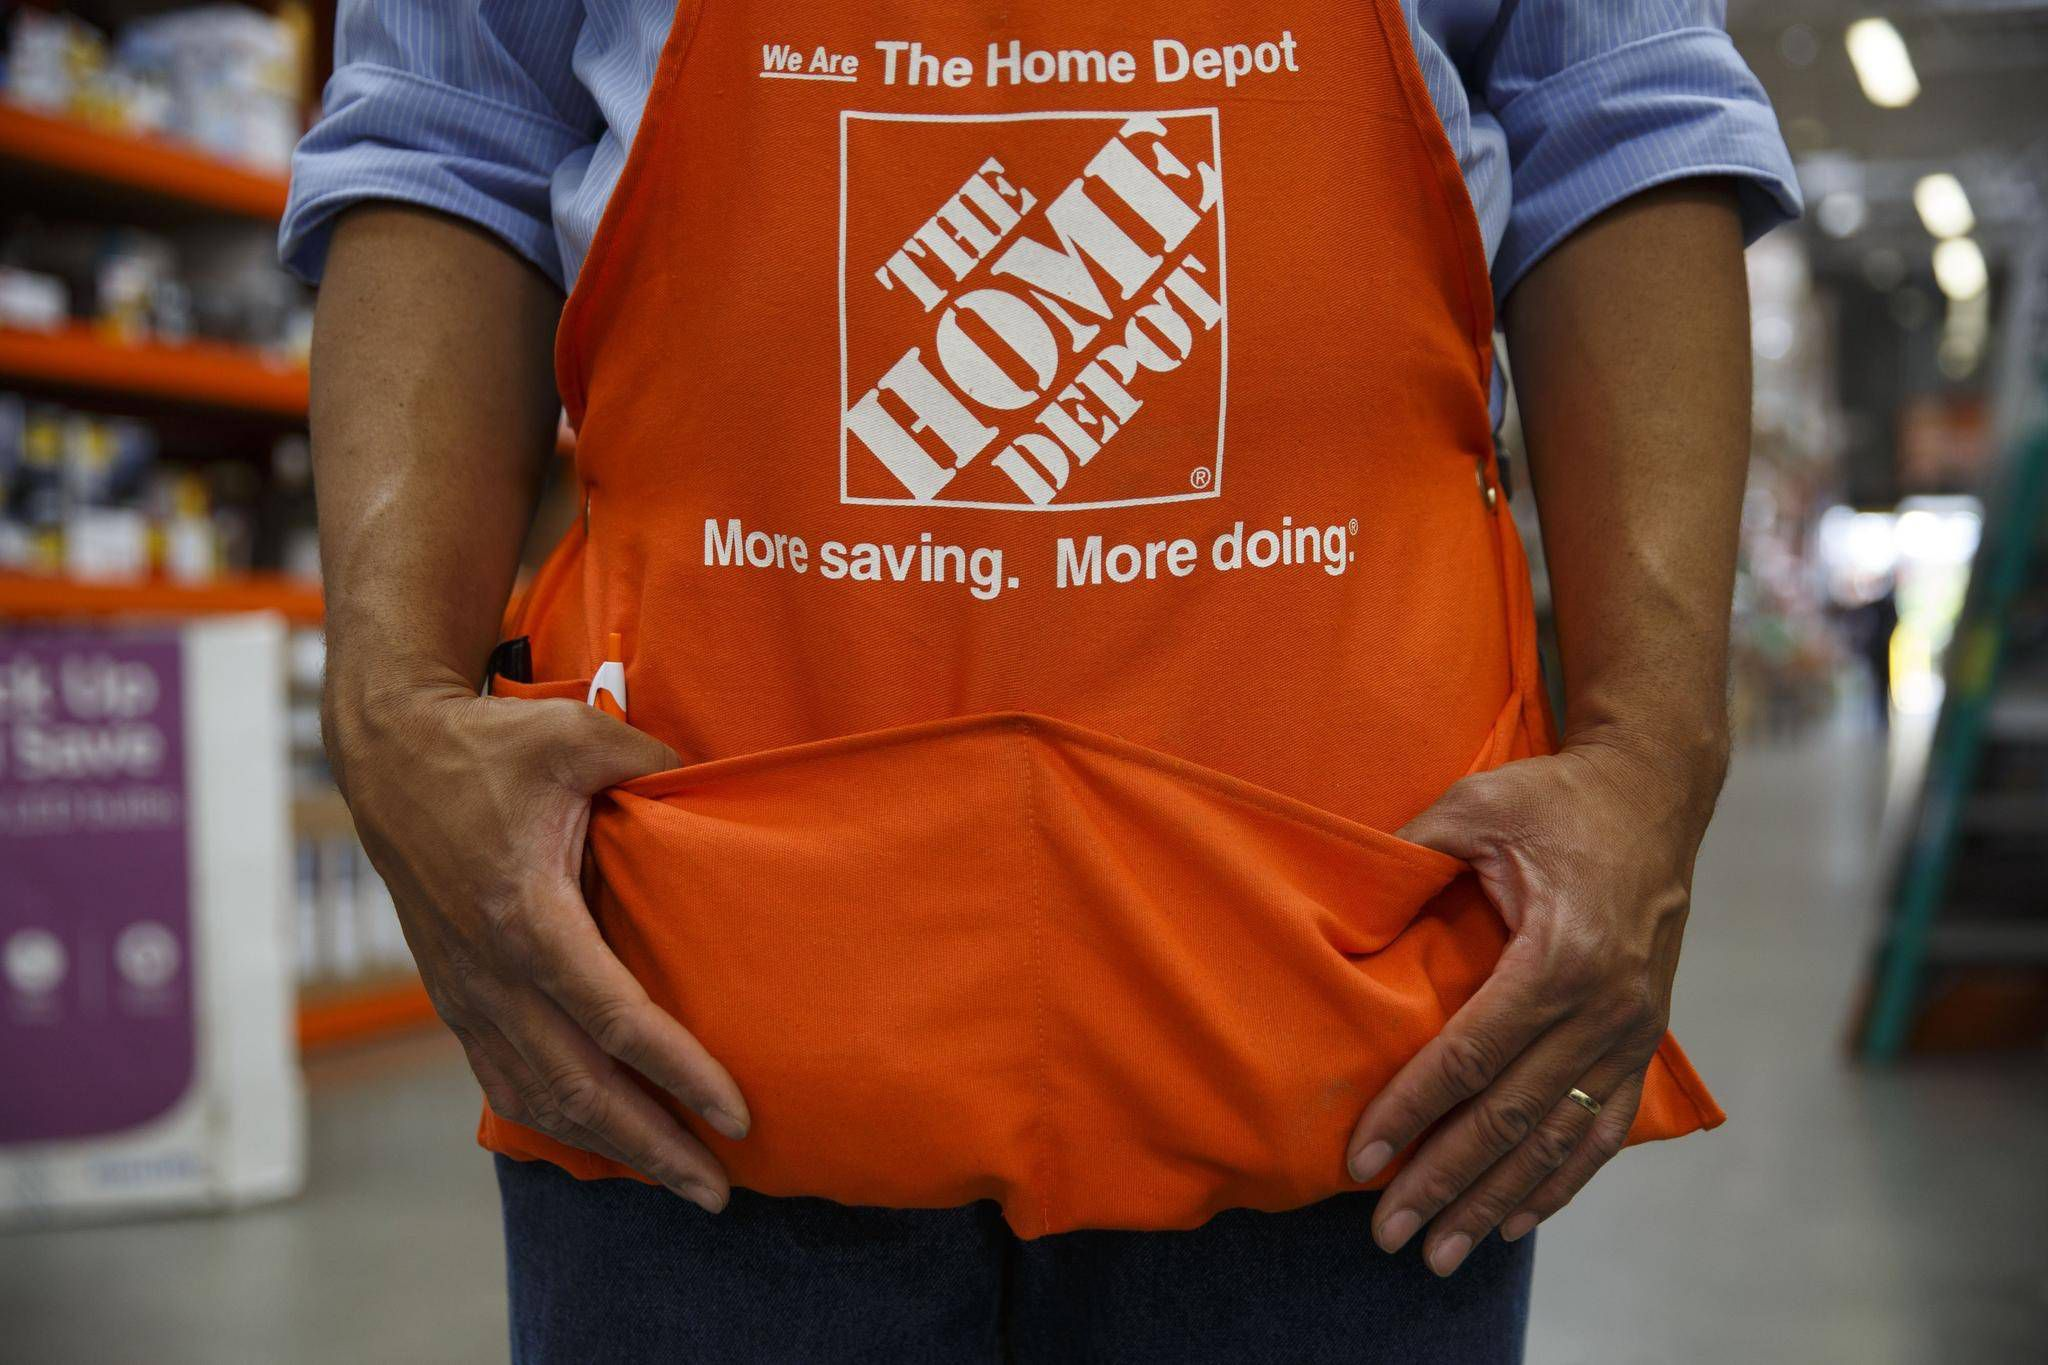 Home depots profit and sales top estimates on higher traffic home depots profit and sales top estimates on higher traffic spending the globe and mail biocorpaavc